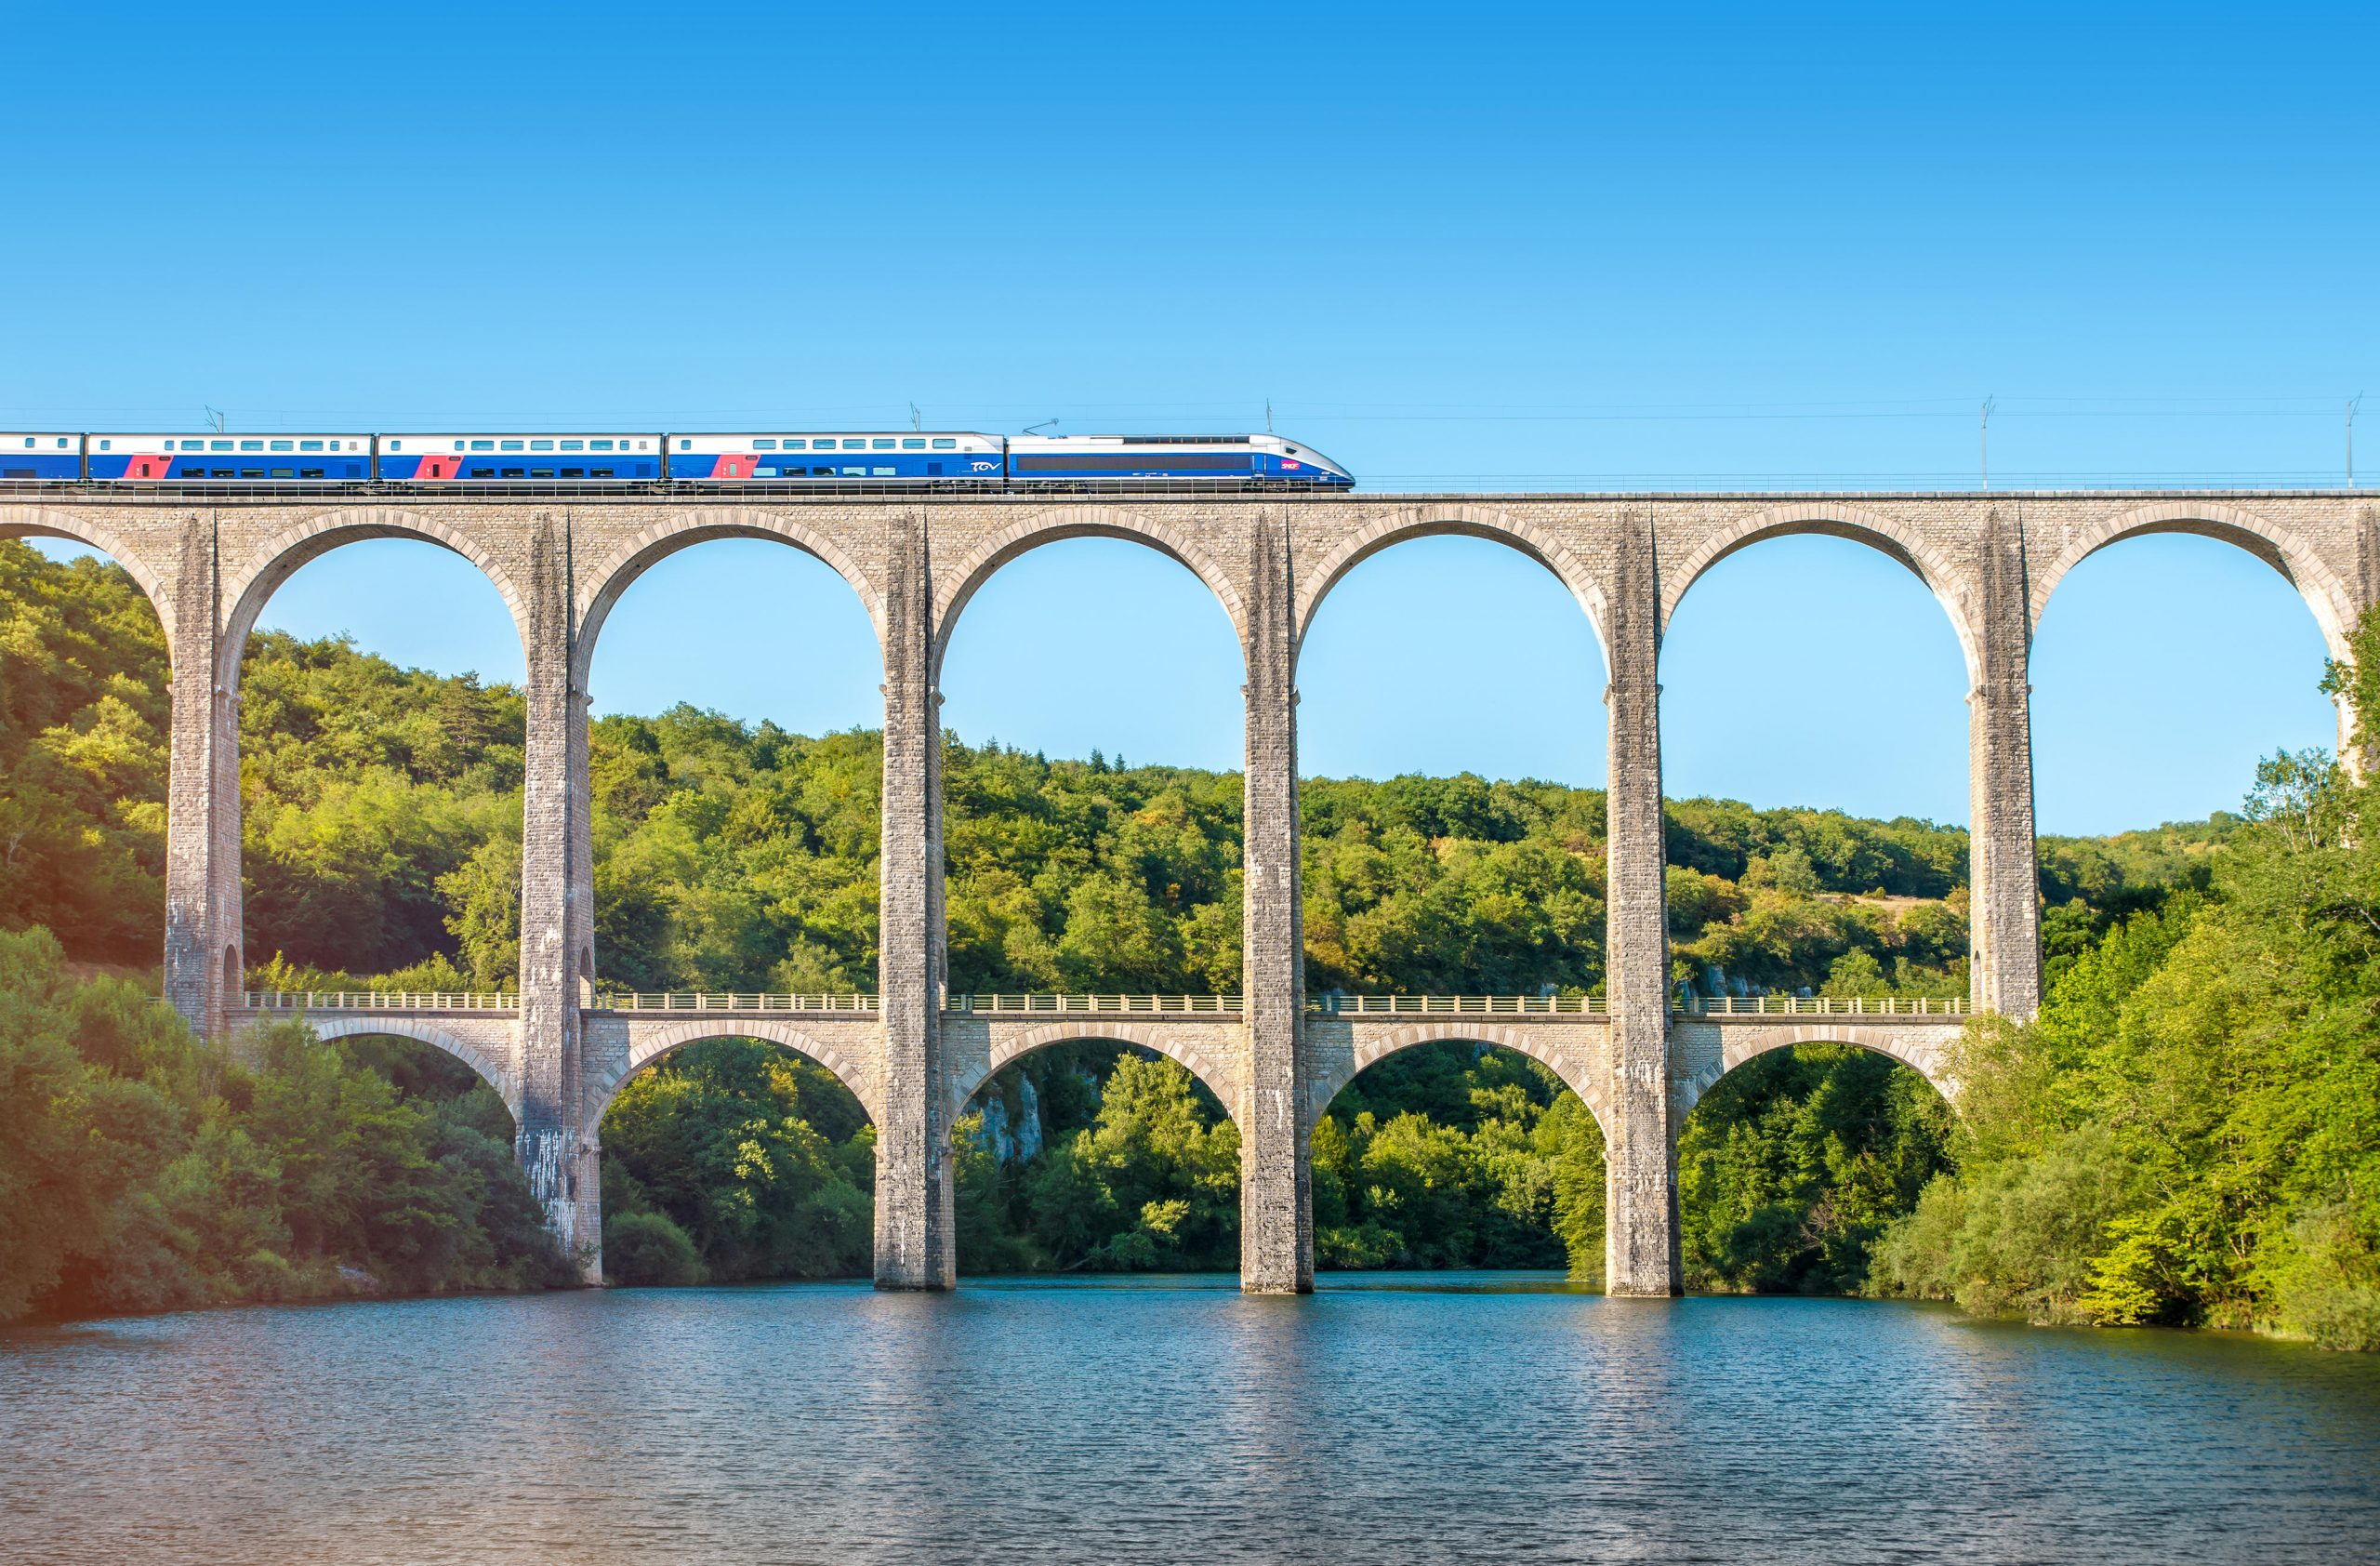 An SNCF train crosses theCize-Bolozon viaduct bridge in Ain, Rhone-Alpes, France. The viaduct accommodates both road and rail.An original span, built in the same location in 1875, was destroyed in the SecondWorld War. It was reconstructed as an urgent post-war project as it was on themain line to Paris.